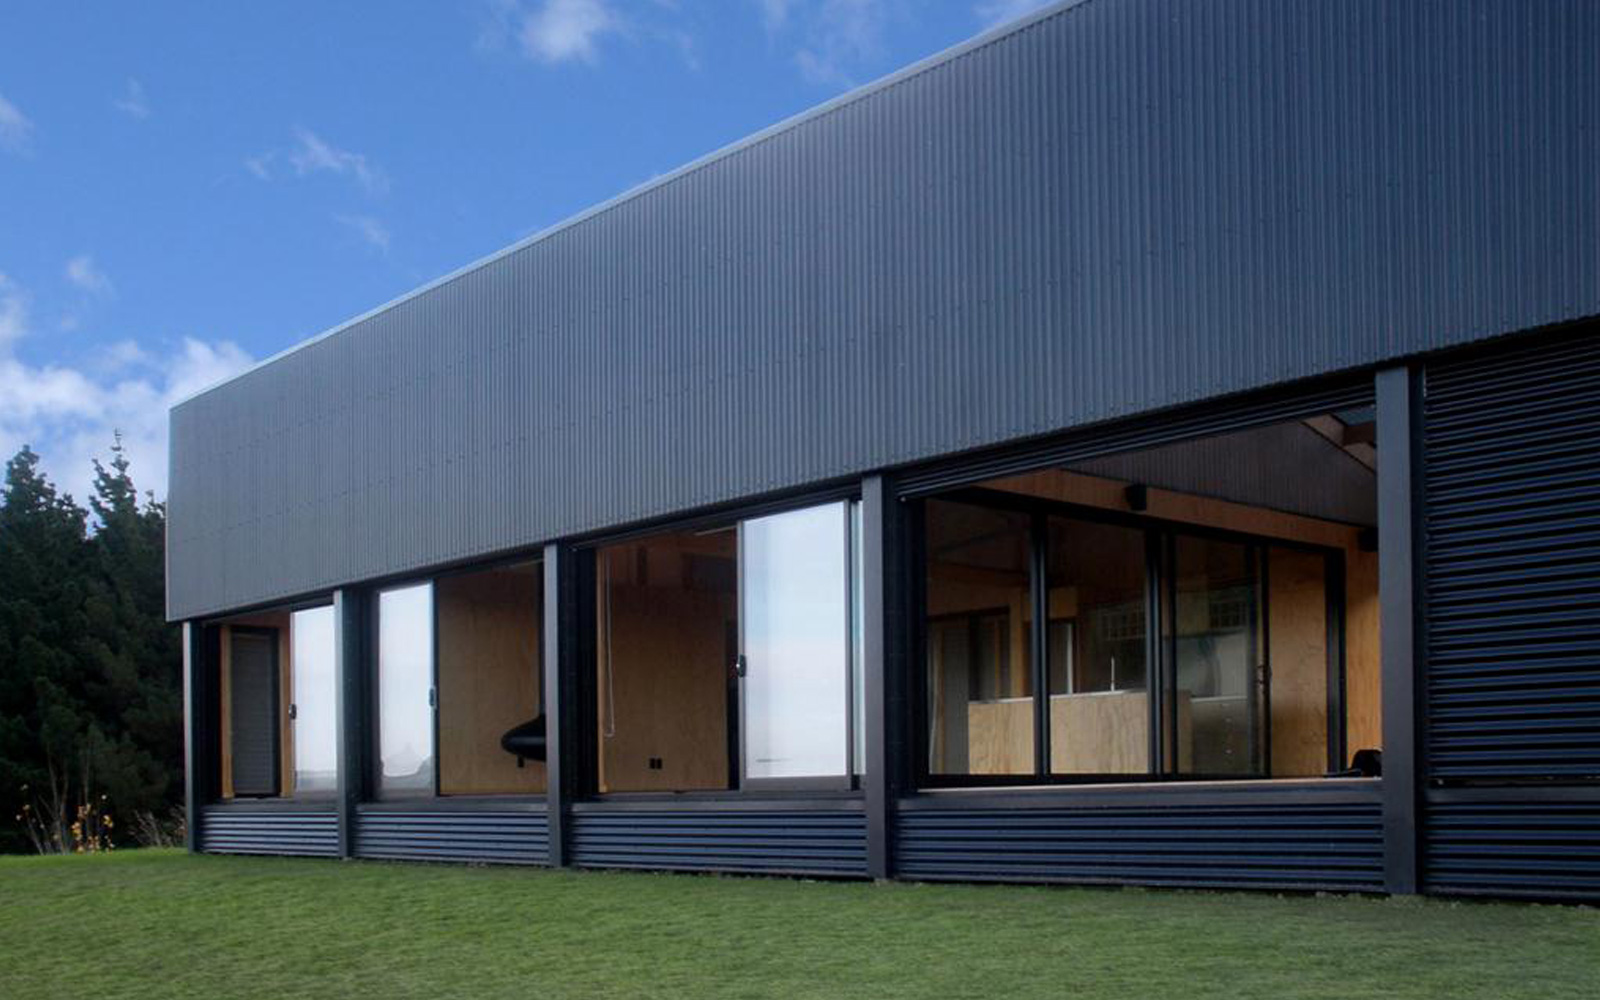 waimarama house hawkes bay crosson architects crosson architects